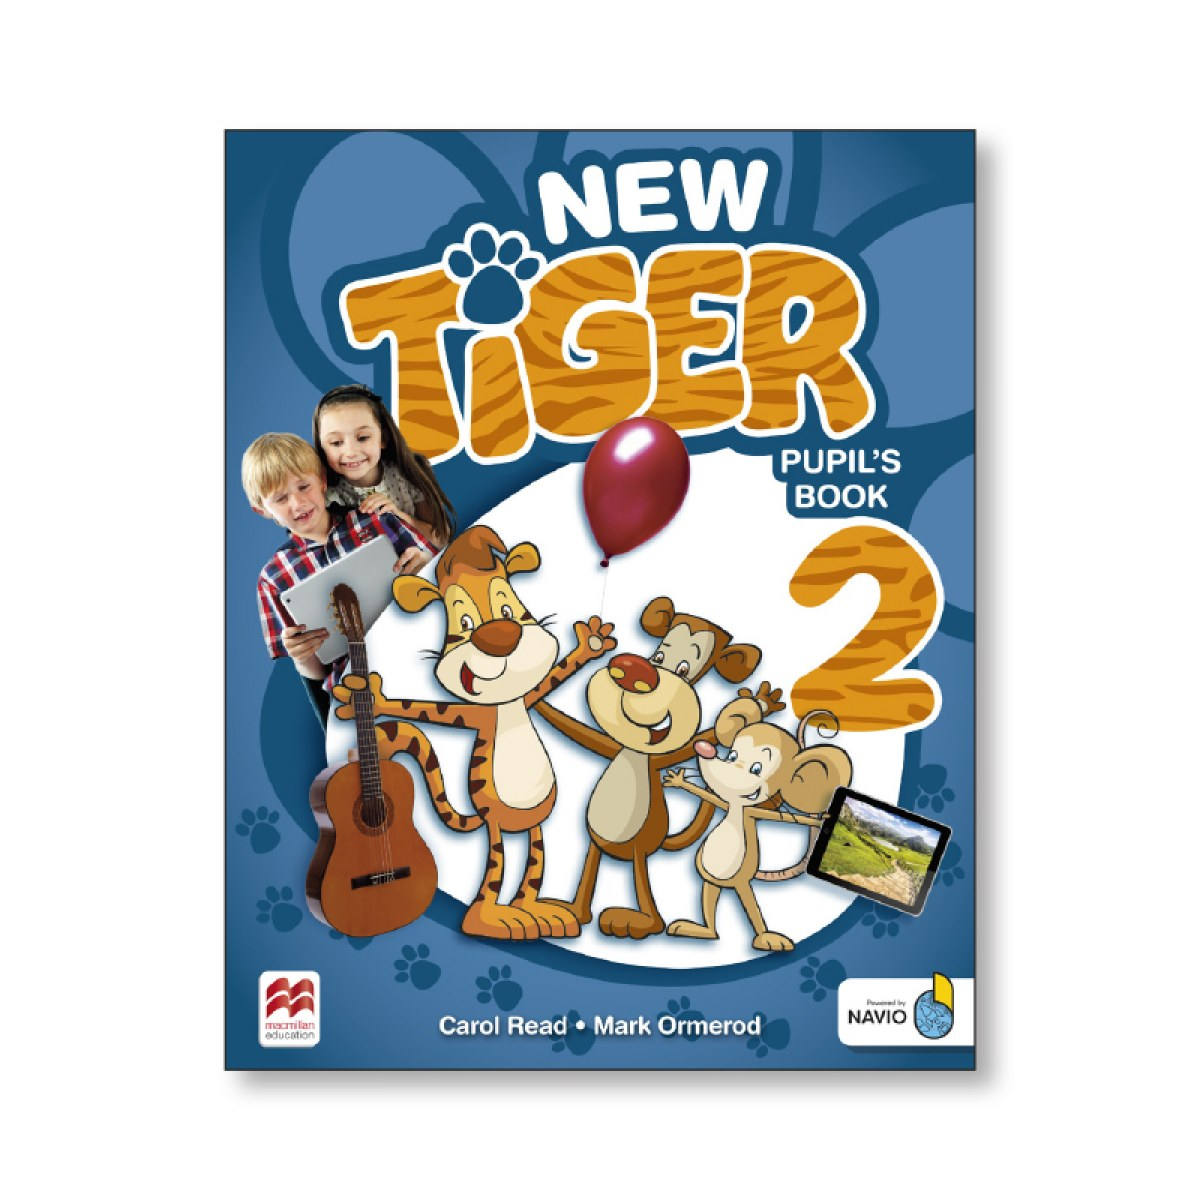 NEW TIGER 2 PUPIL S BOOK PACK 9781380011183